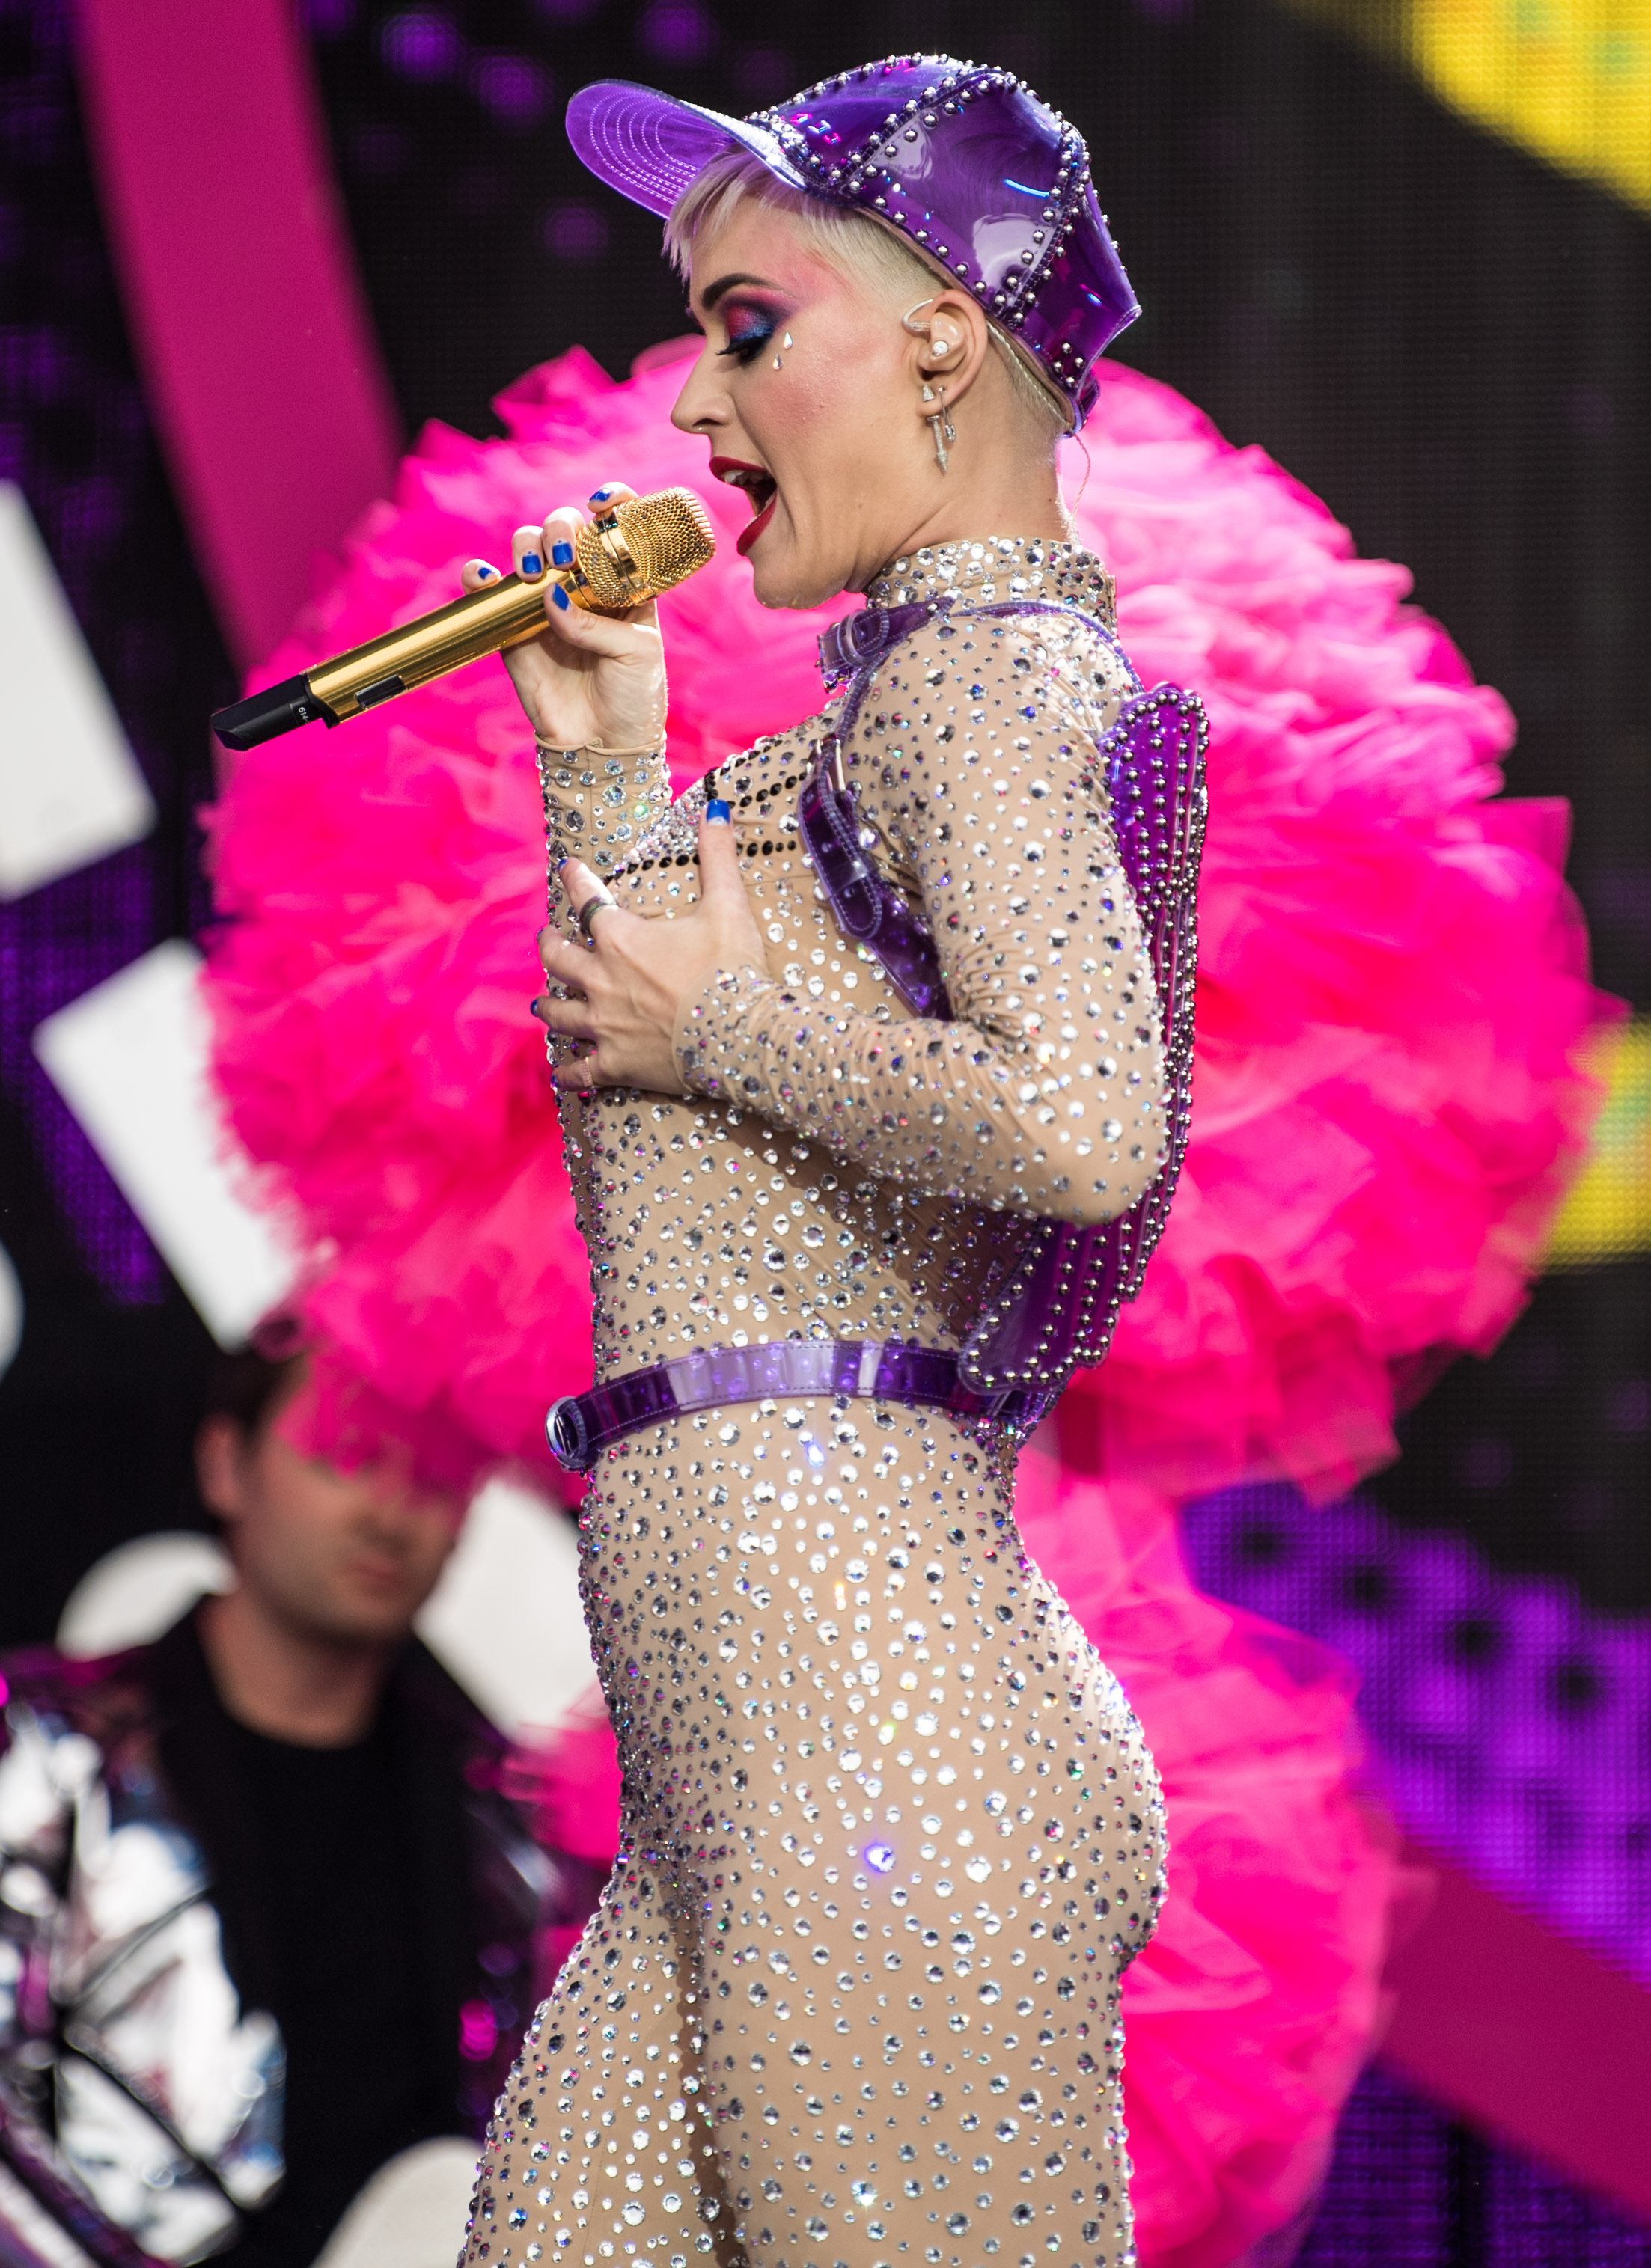 Katy Perry performing on the Pyramid Stage